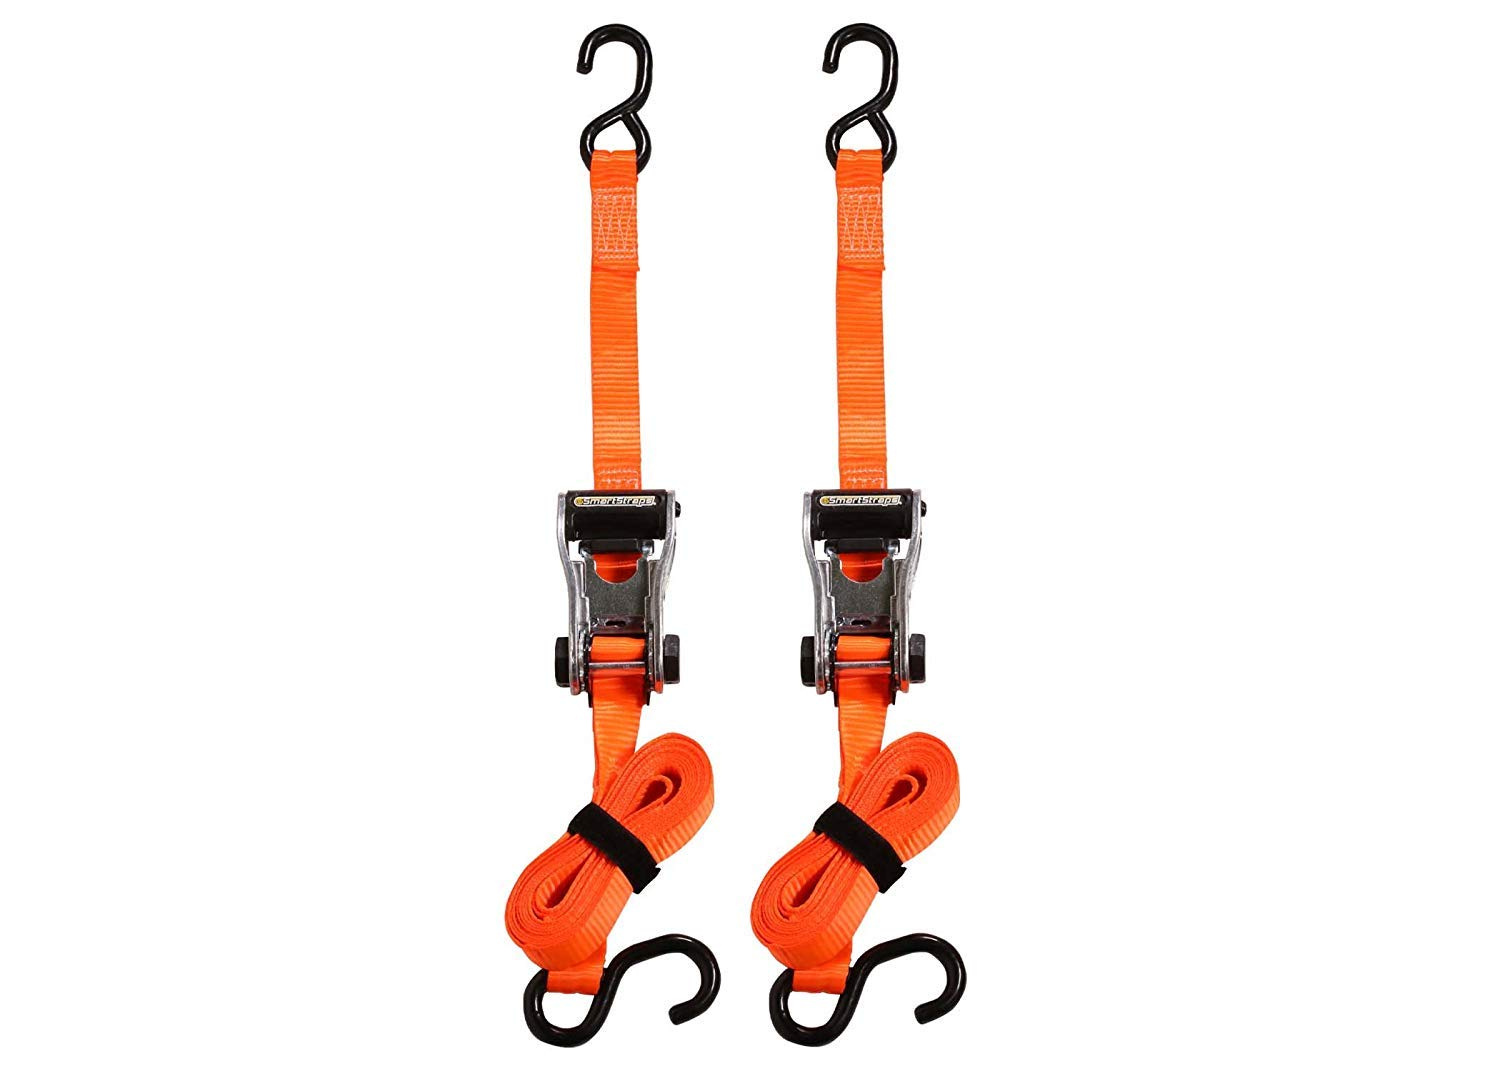 SmartStraps 340 RatchetX Orange 10 3,000 lbs Capacity Tie Down, Pack of 2